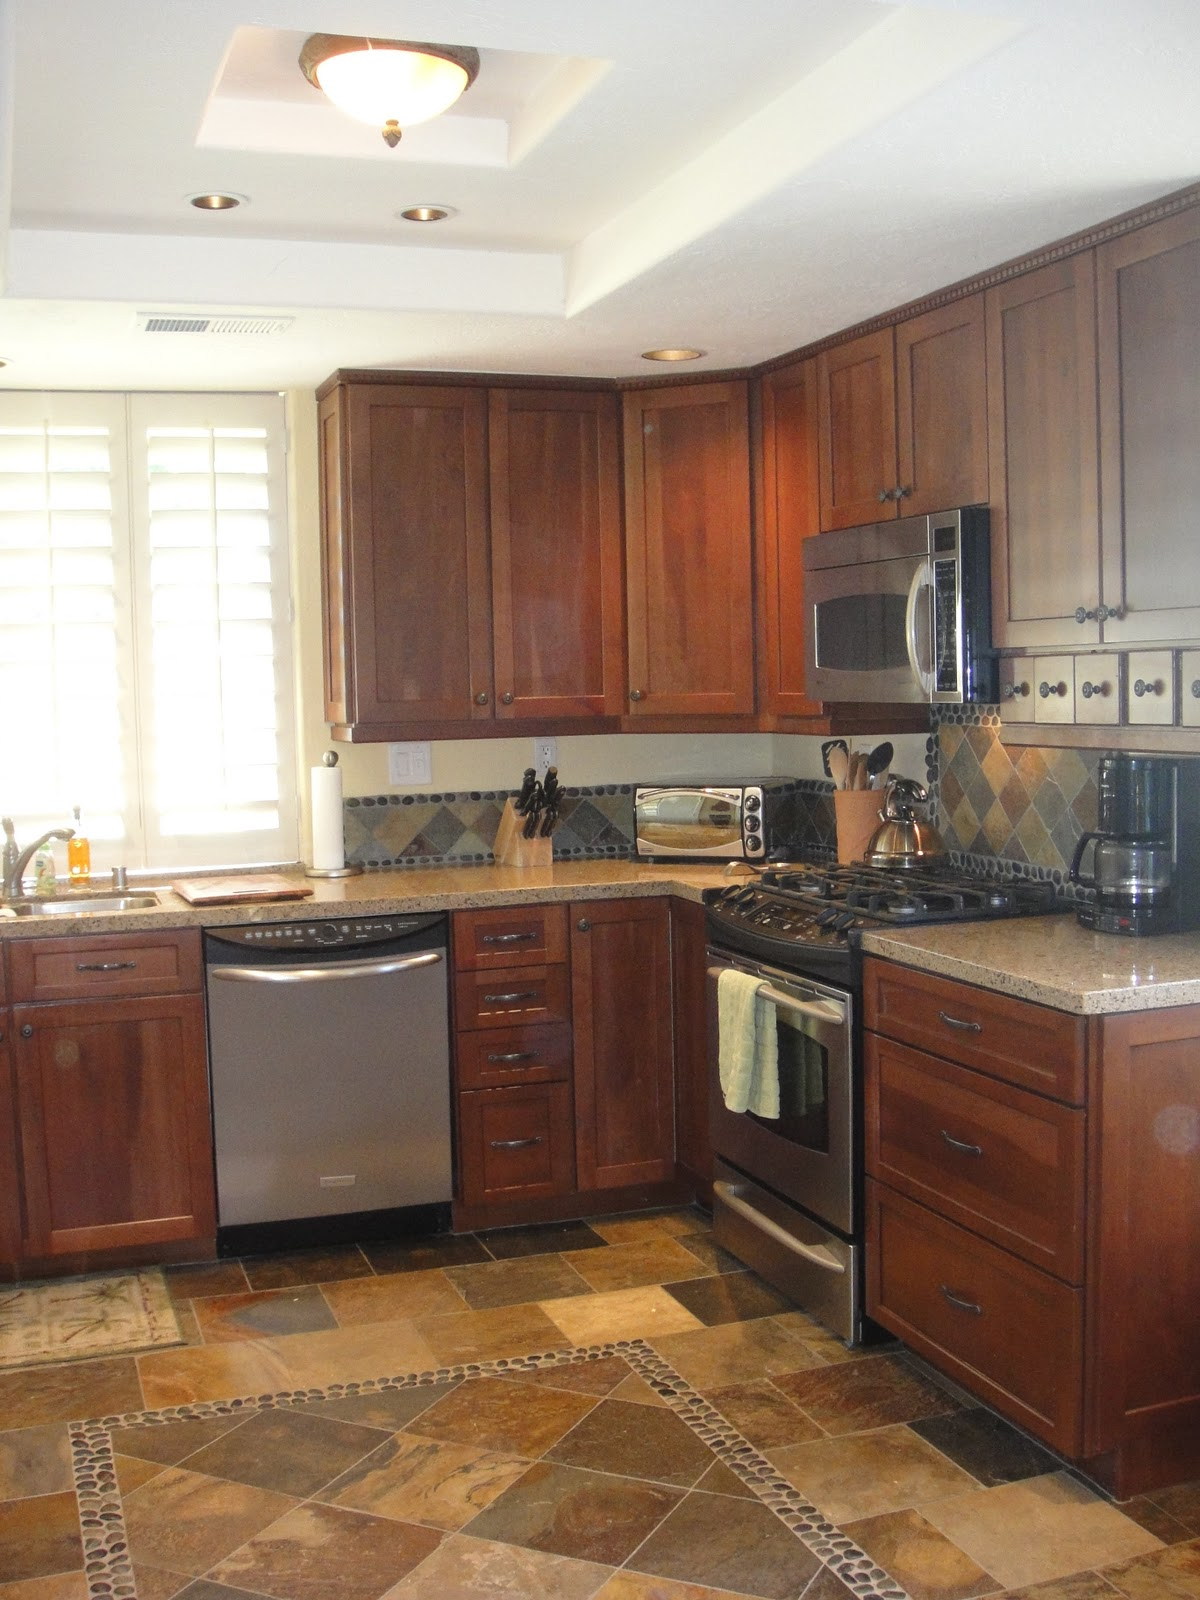 Kitchen with dark walnut stained cherry wood cabinets, granite